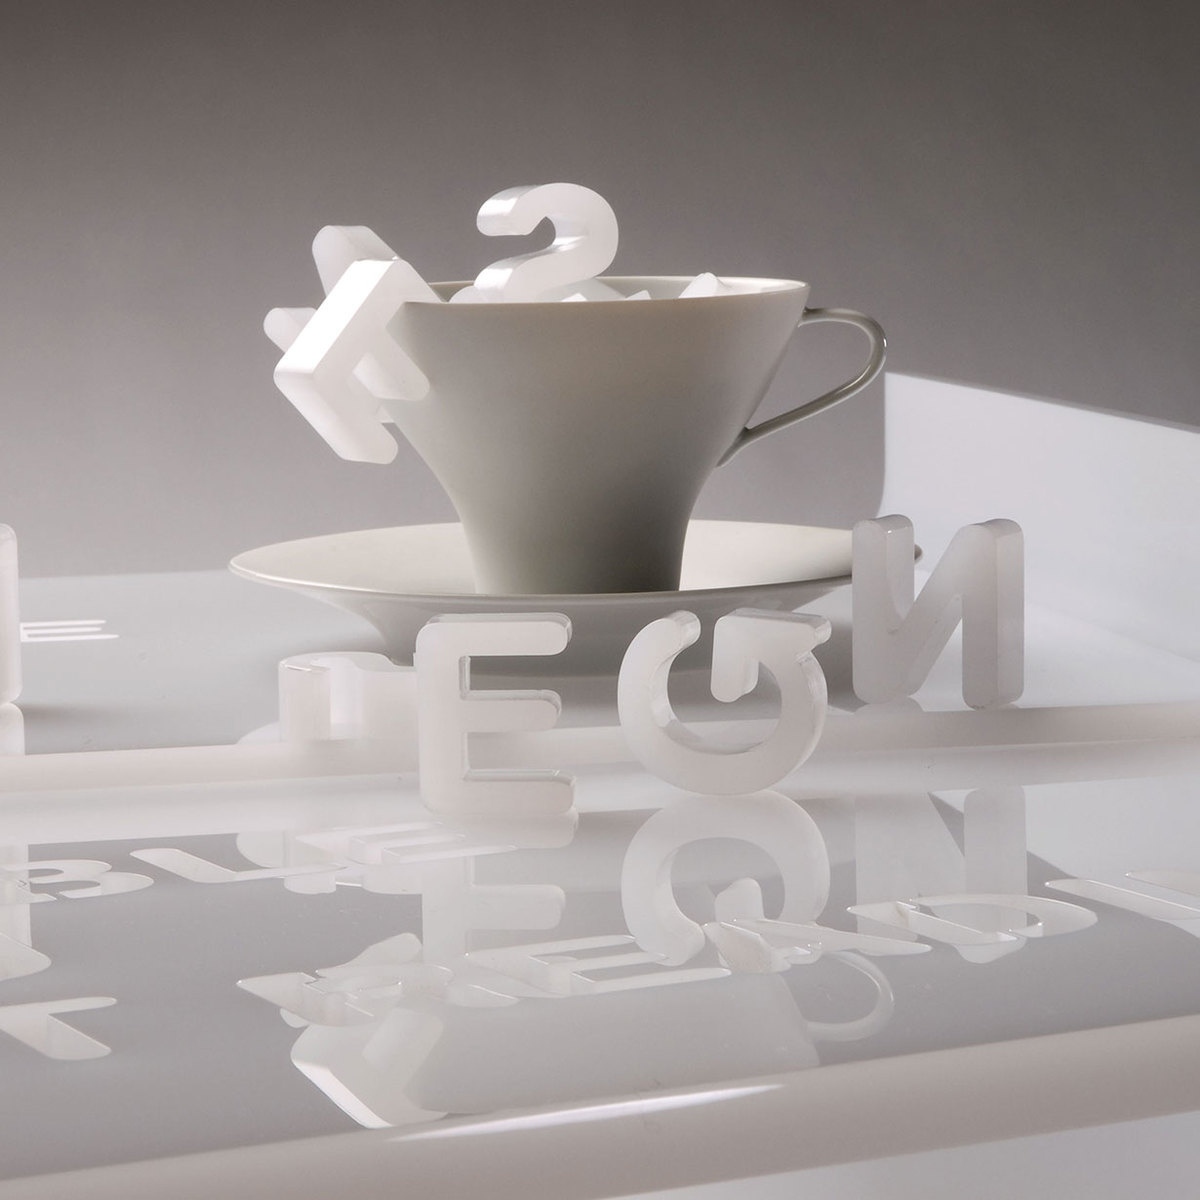 Letterpress Tray Coffee Table: Vox Mobili Coffee Table With Tray By Lettera G